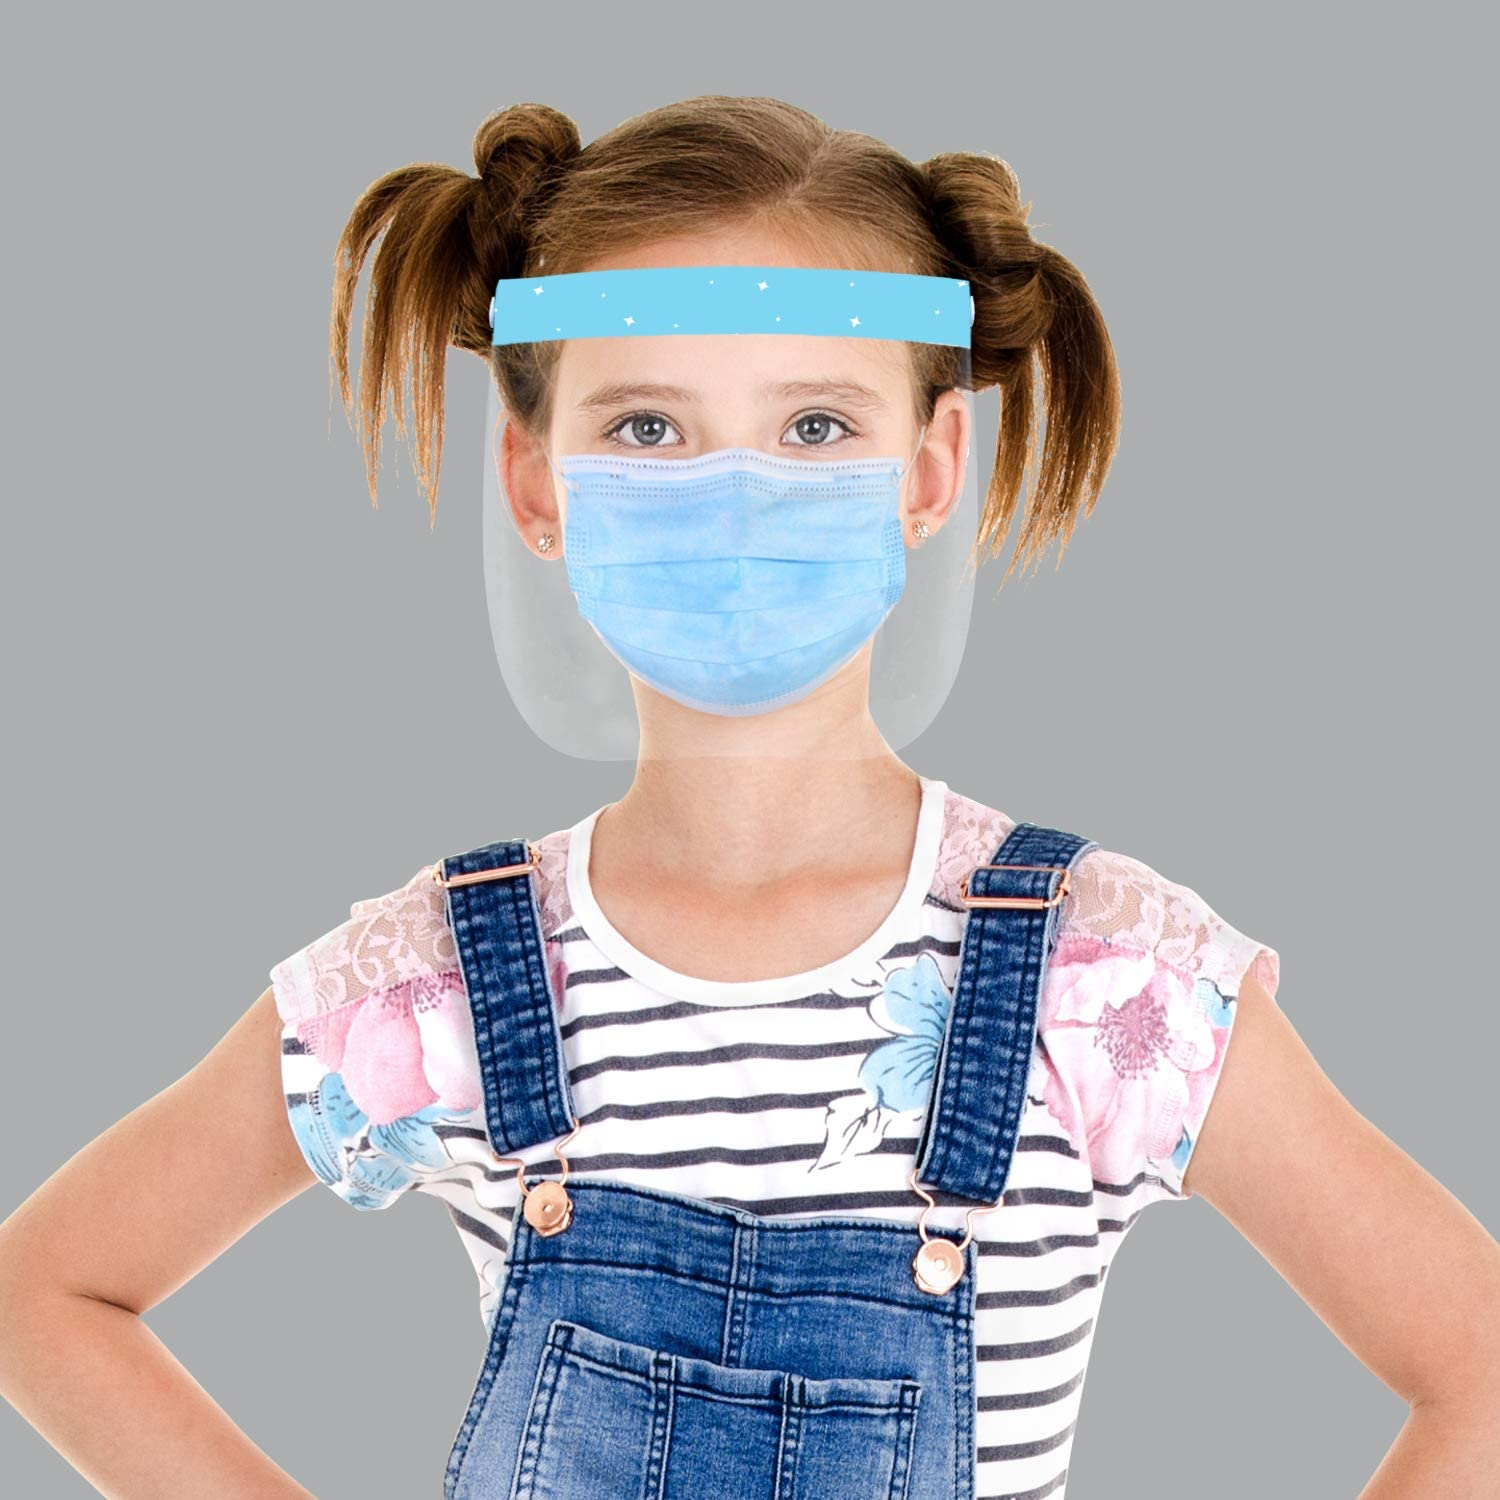 1 Sports face  shield 6Lx12W  for kids children comfy no tight band around head